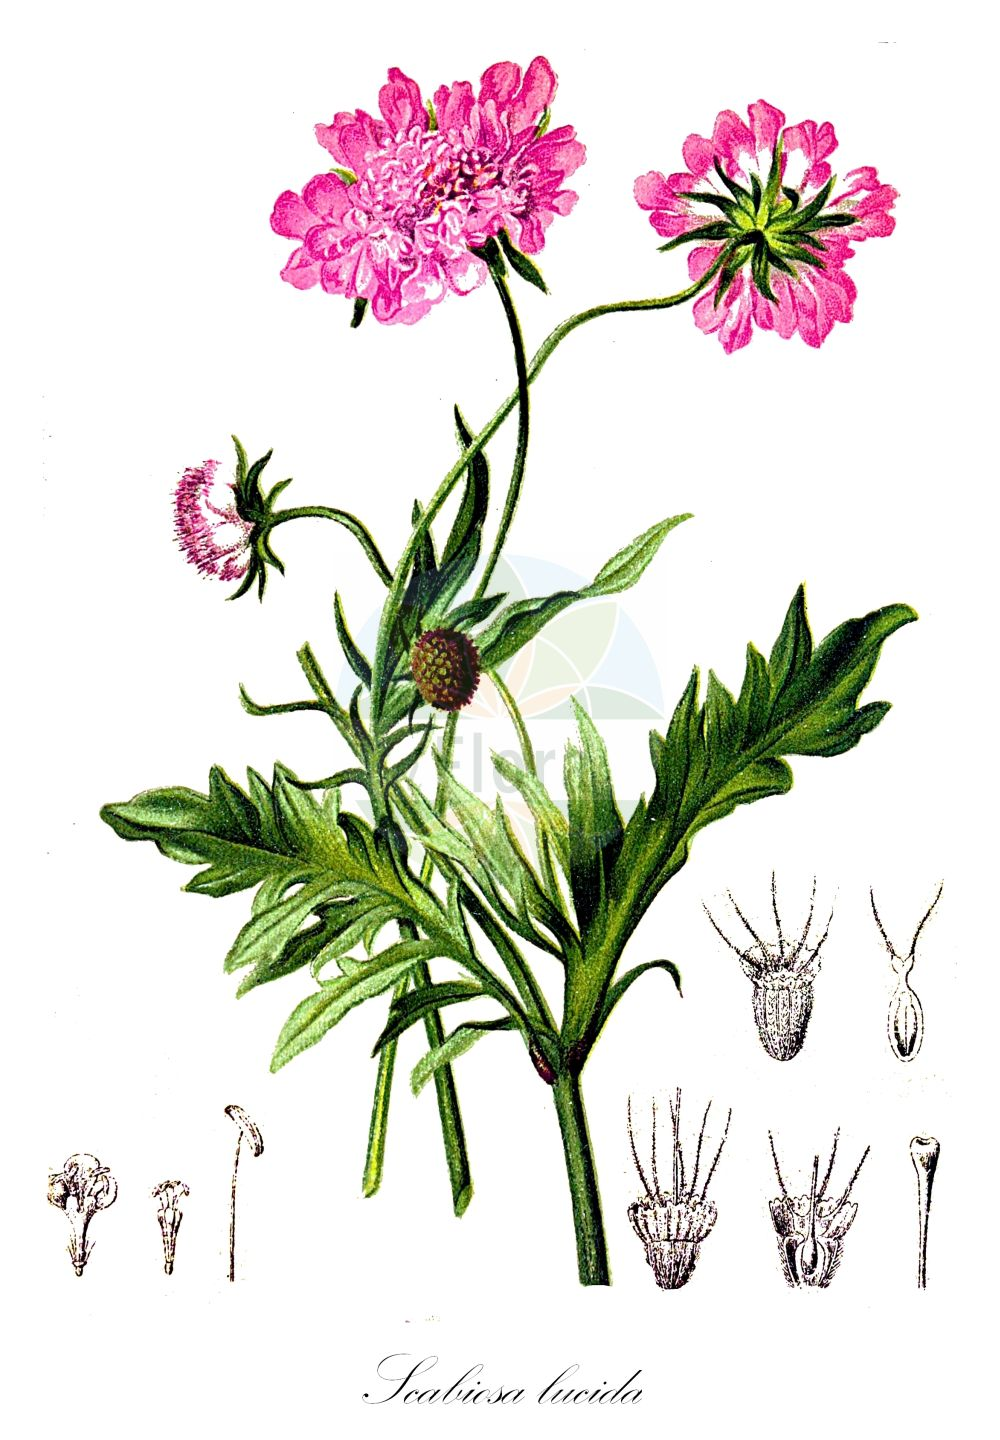 Historische Abbildung von Scabiosa lucida (Glaenzende Skabiose - Glossy Scabious). Das Bild zeigt Blatt, Bluete, Frucht und Same. ---- Historical Drawing of Scabiosa lucida (Glaenzende Skabiose - Glossy Scabious).The image is showing leaf, flower, fruit and seed.(Scabiosa lucida,Glaenzende Skabiose,Glossy Scabious,Scabiosa opaca,Scabiosa pubescens,Shining Scabious,Scabiosa,Skabiose,Scabious,Caprifoliaceae,Geissblattgewaechse,Honeysuckle family,Blatt,Bluete,Frucht,Same,leaf,flower,fruit,seed,Hartinger & von Dalla Torre (1806f))